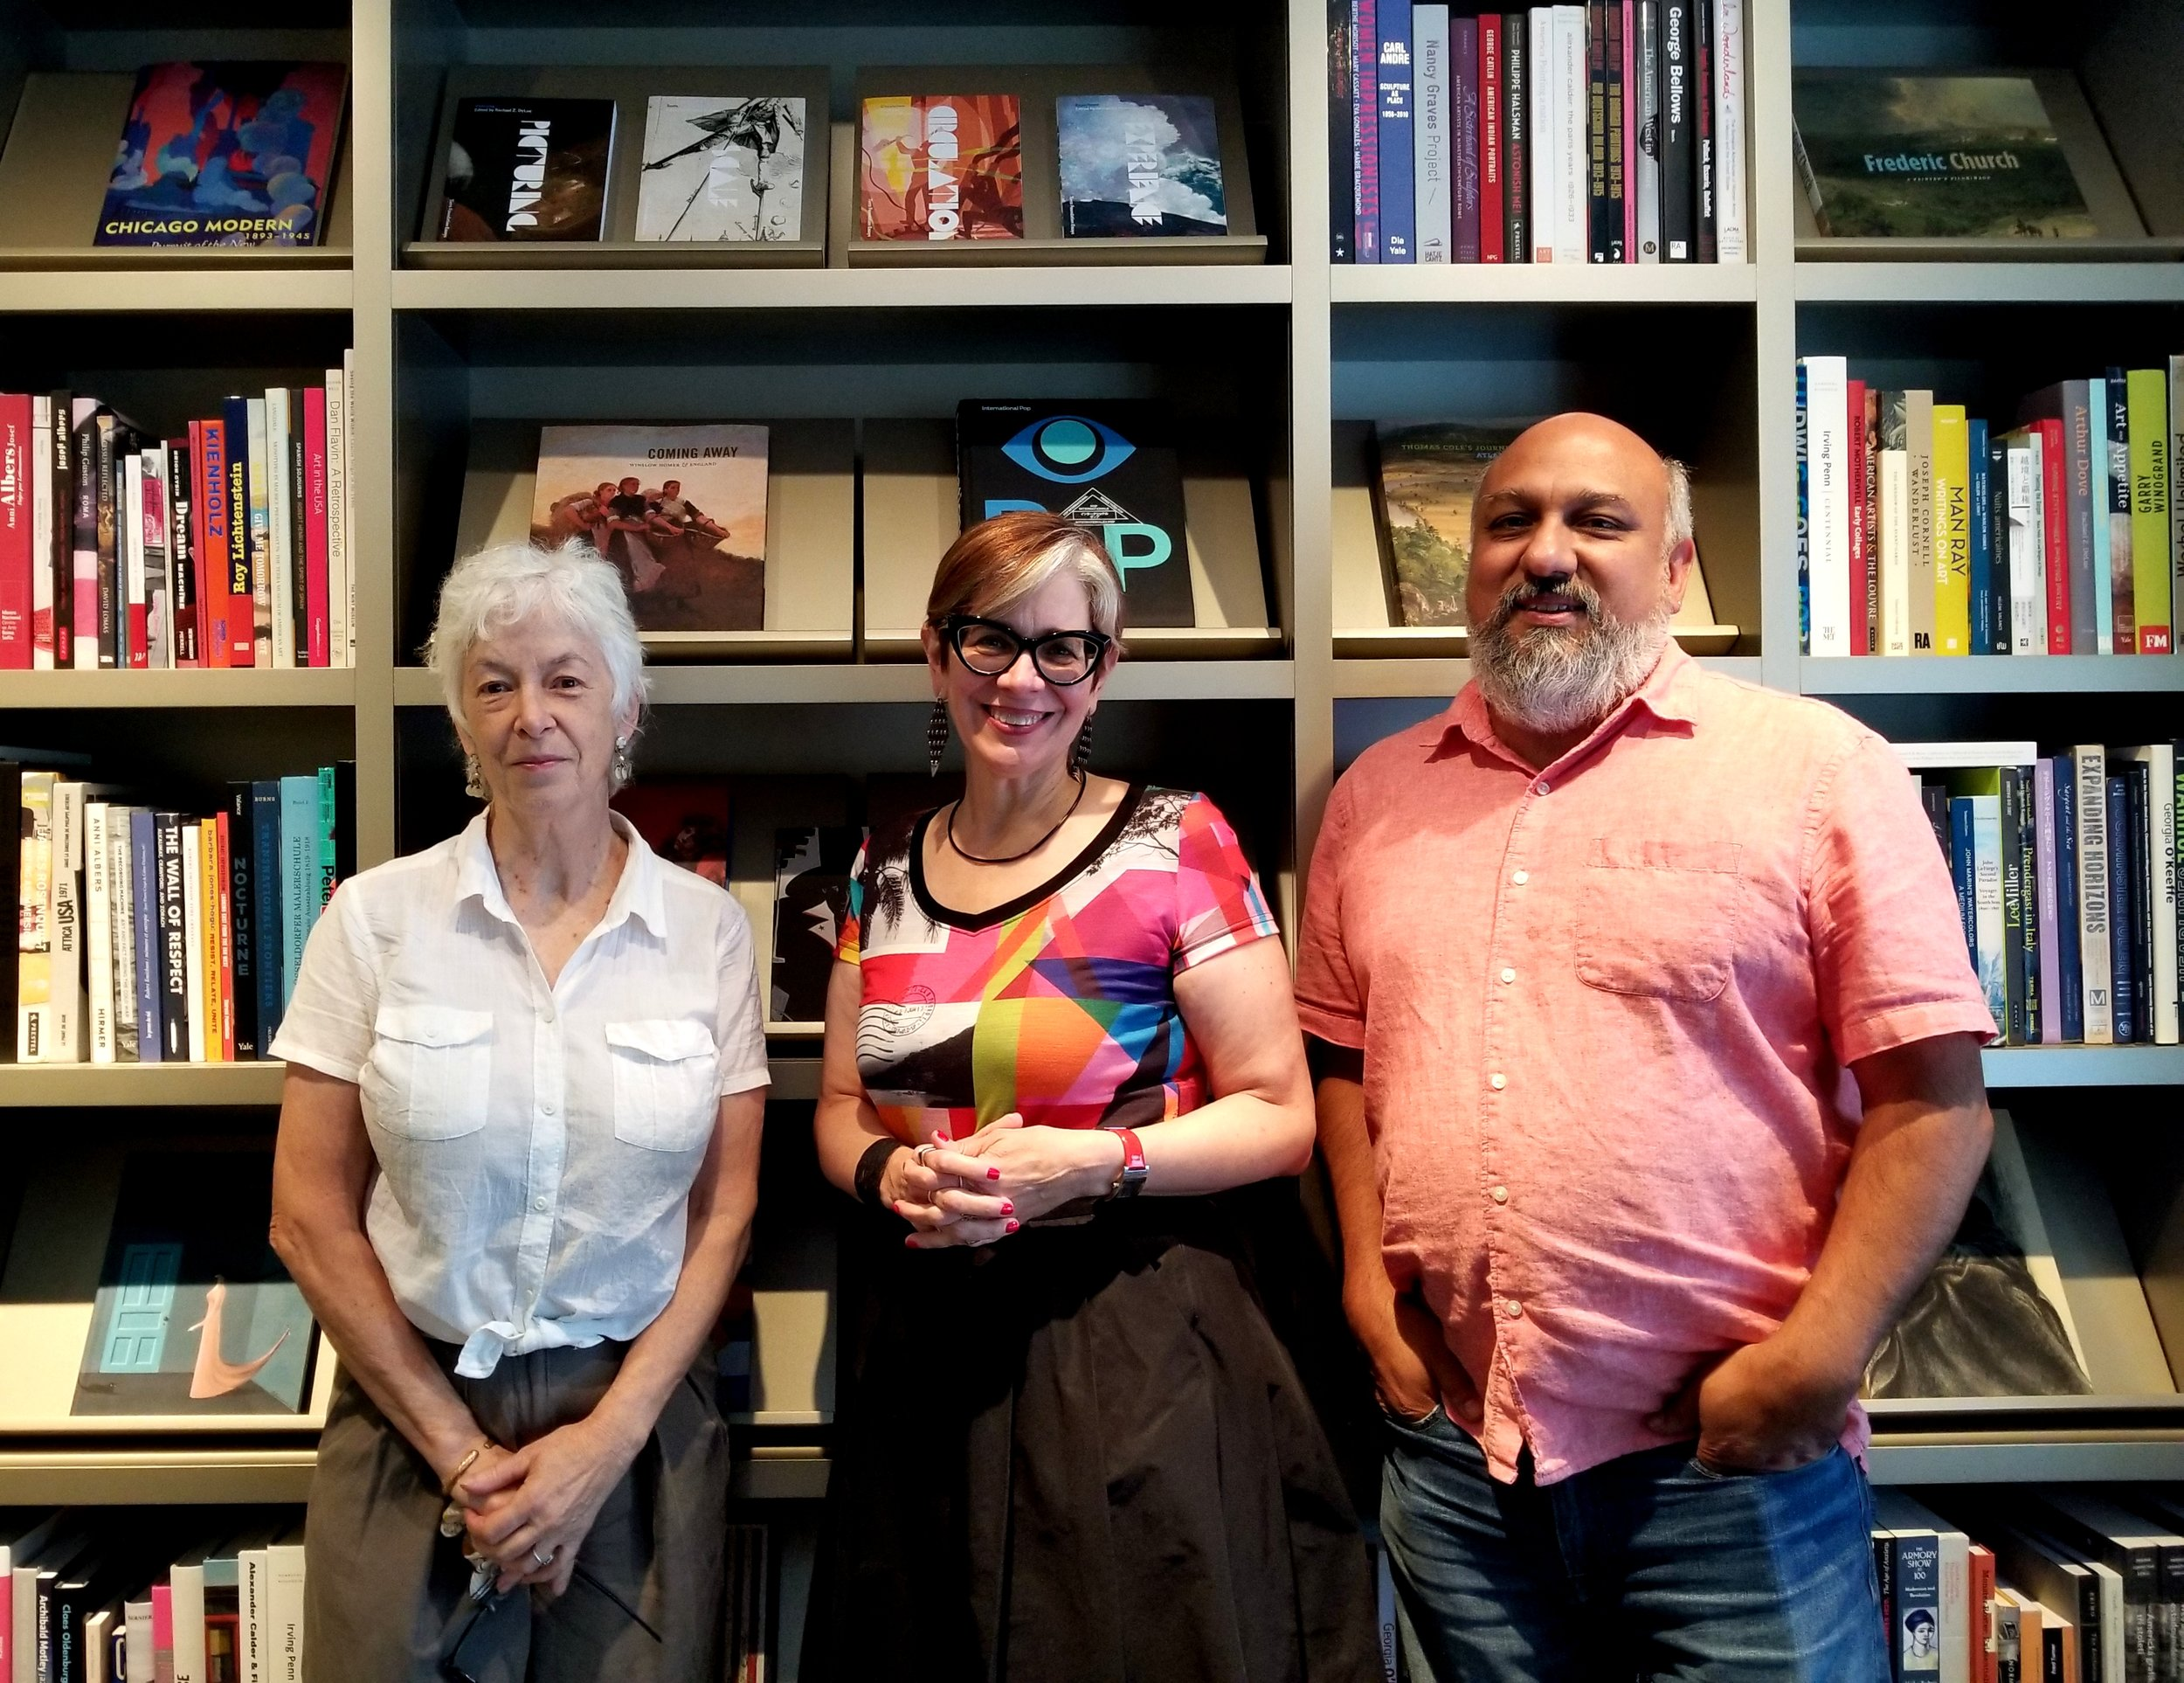 From L to R: Lynne Warren, curator at MCA, Debra Kerr, executive director of Intuit: the Center For Intuitive and Outsider Art and Cesareo Moreno, director of Visual Arts and Chief Curator at the National Museum of Mexican Art.